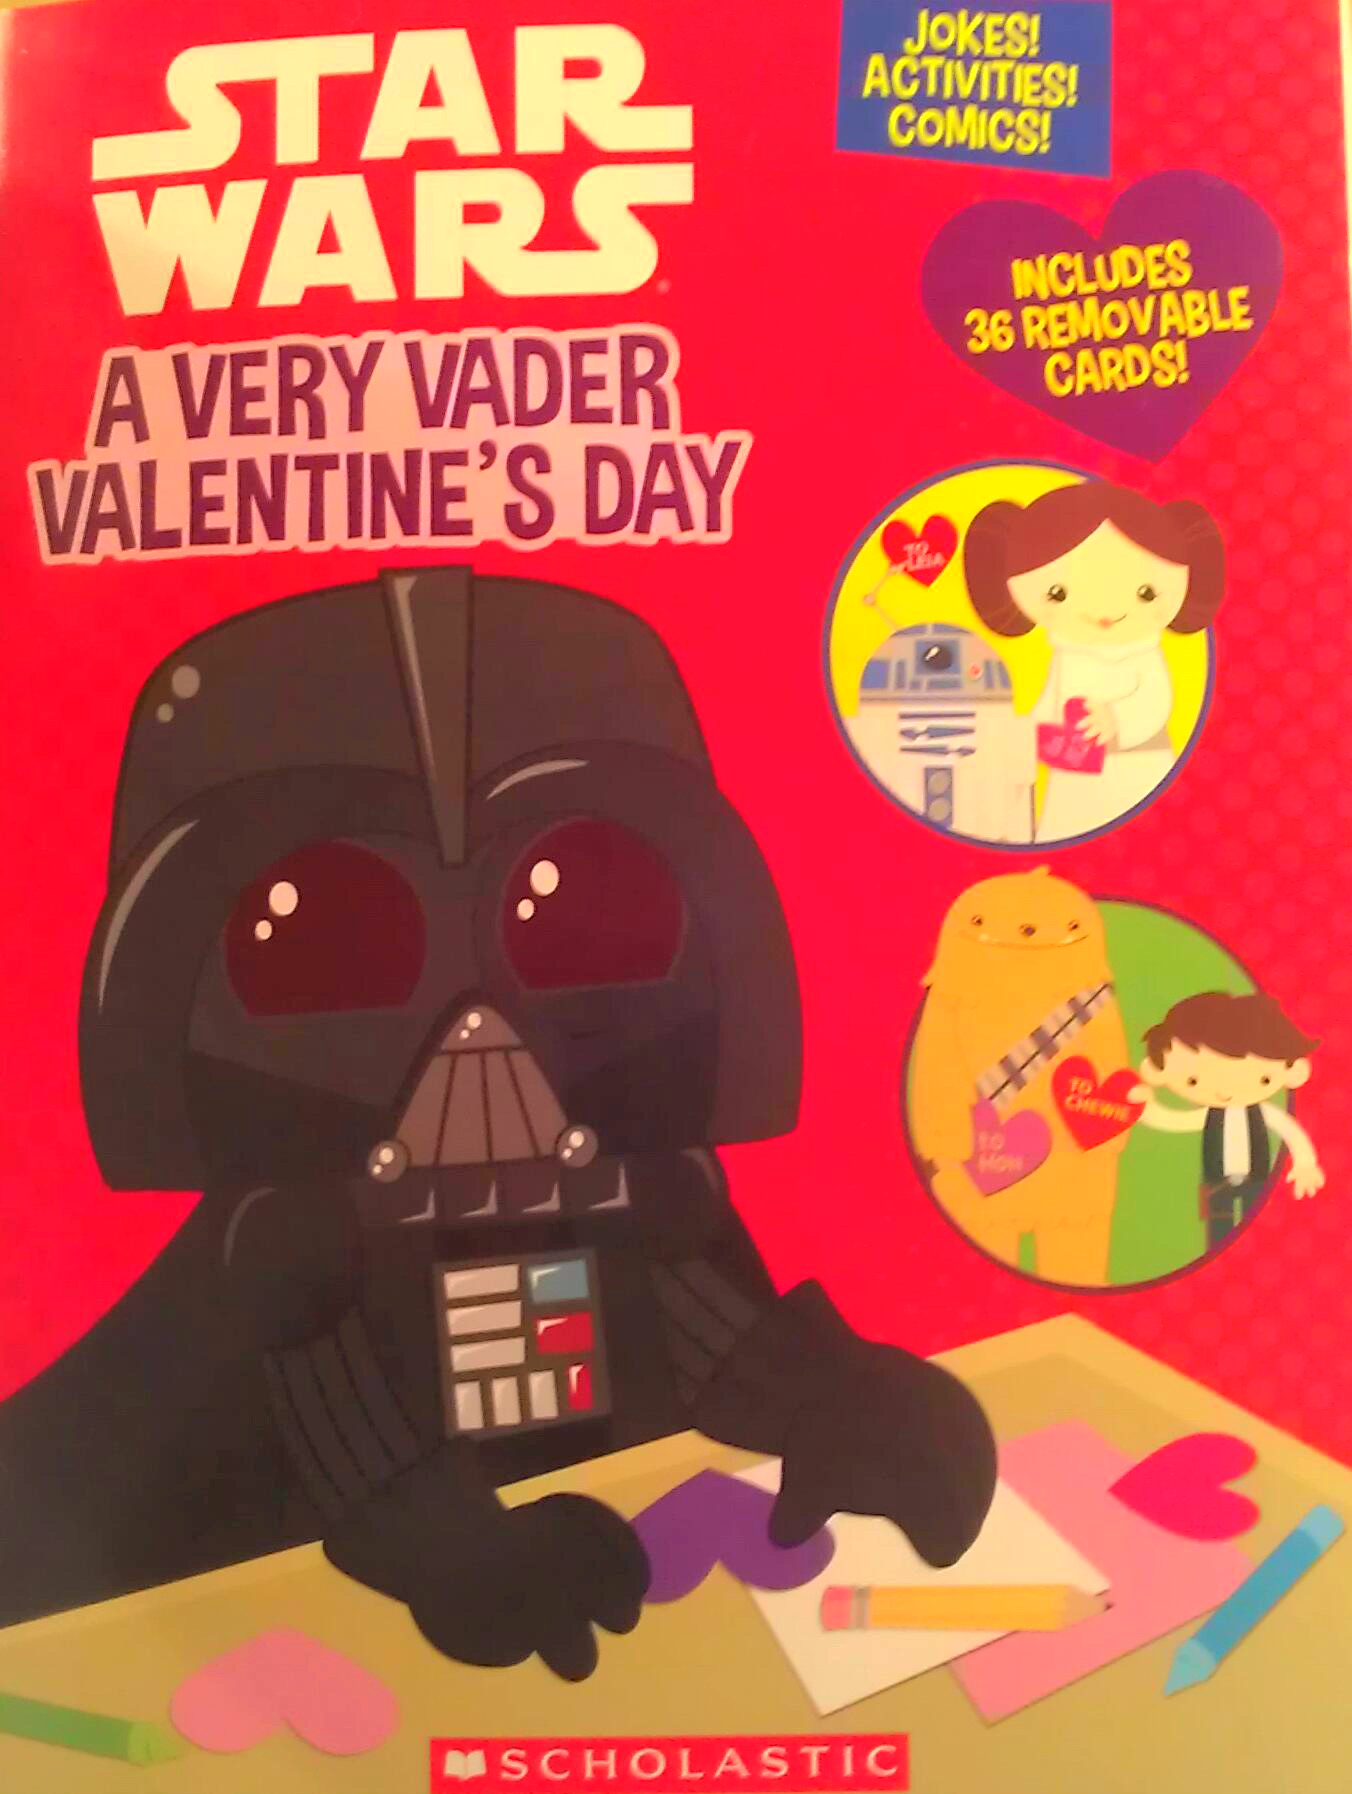 Top 6 Valentine S Day Cards Star Wars Edition